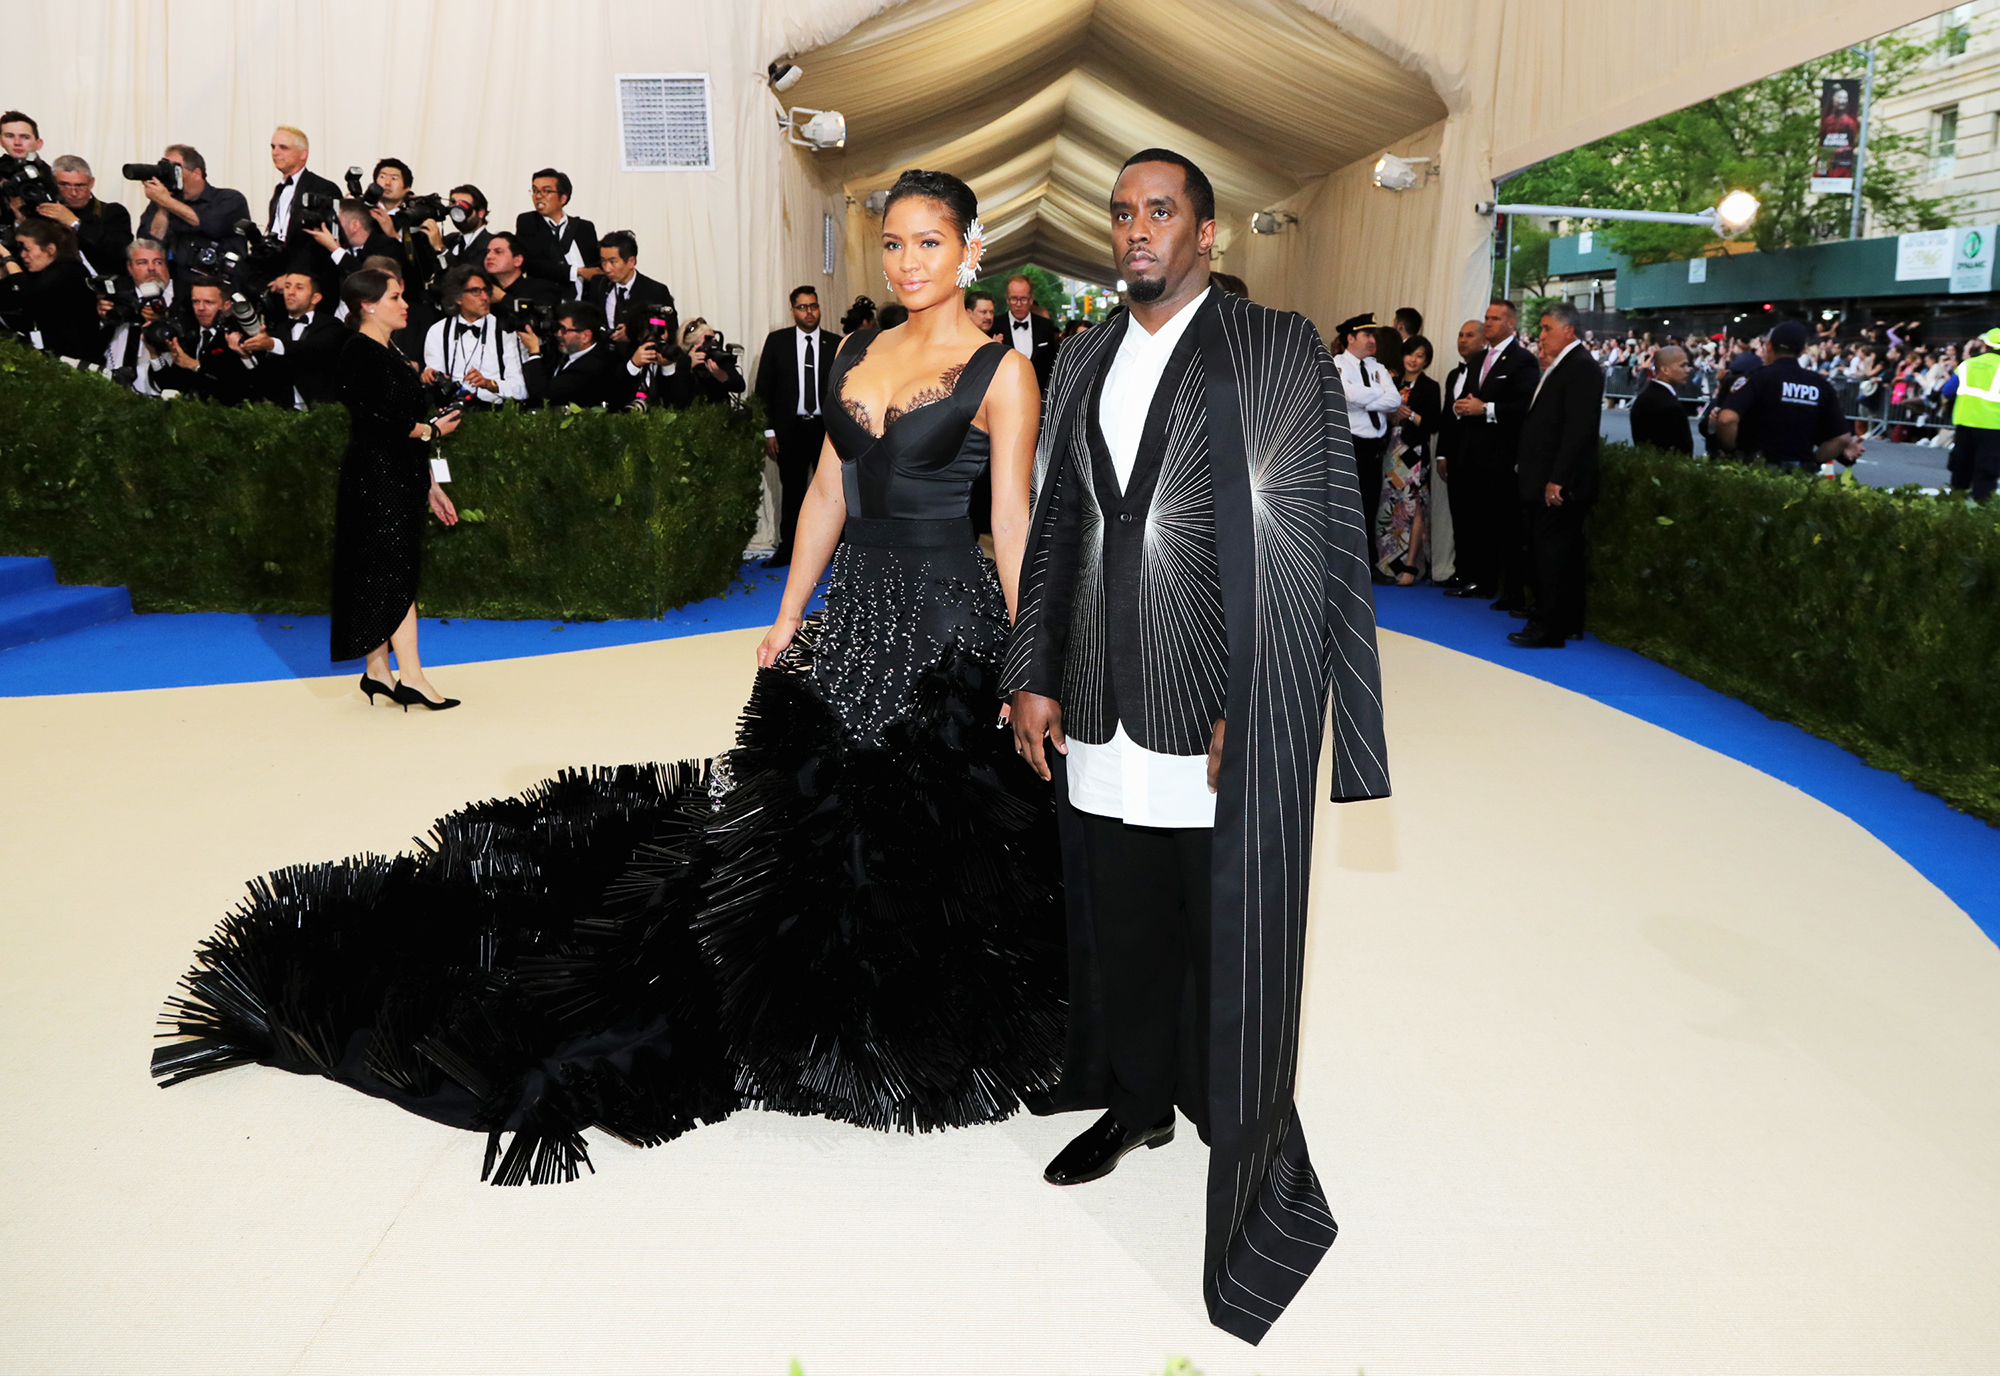 Cassie and Sean  Diddy  Combs attends The Metropolitan Museum of Art's Costume Institute benefit gala celebrating the opening of the Rei Kawakubo/Comme des Garçons: Art of the In-Between exhibition in New York City, on May 1, 2017.